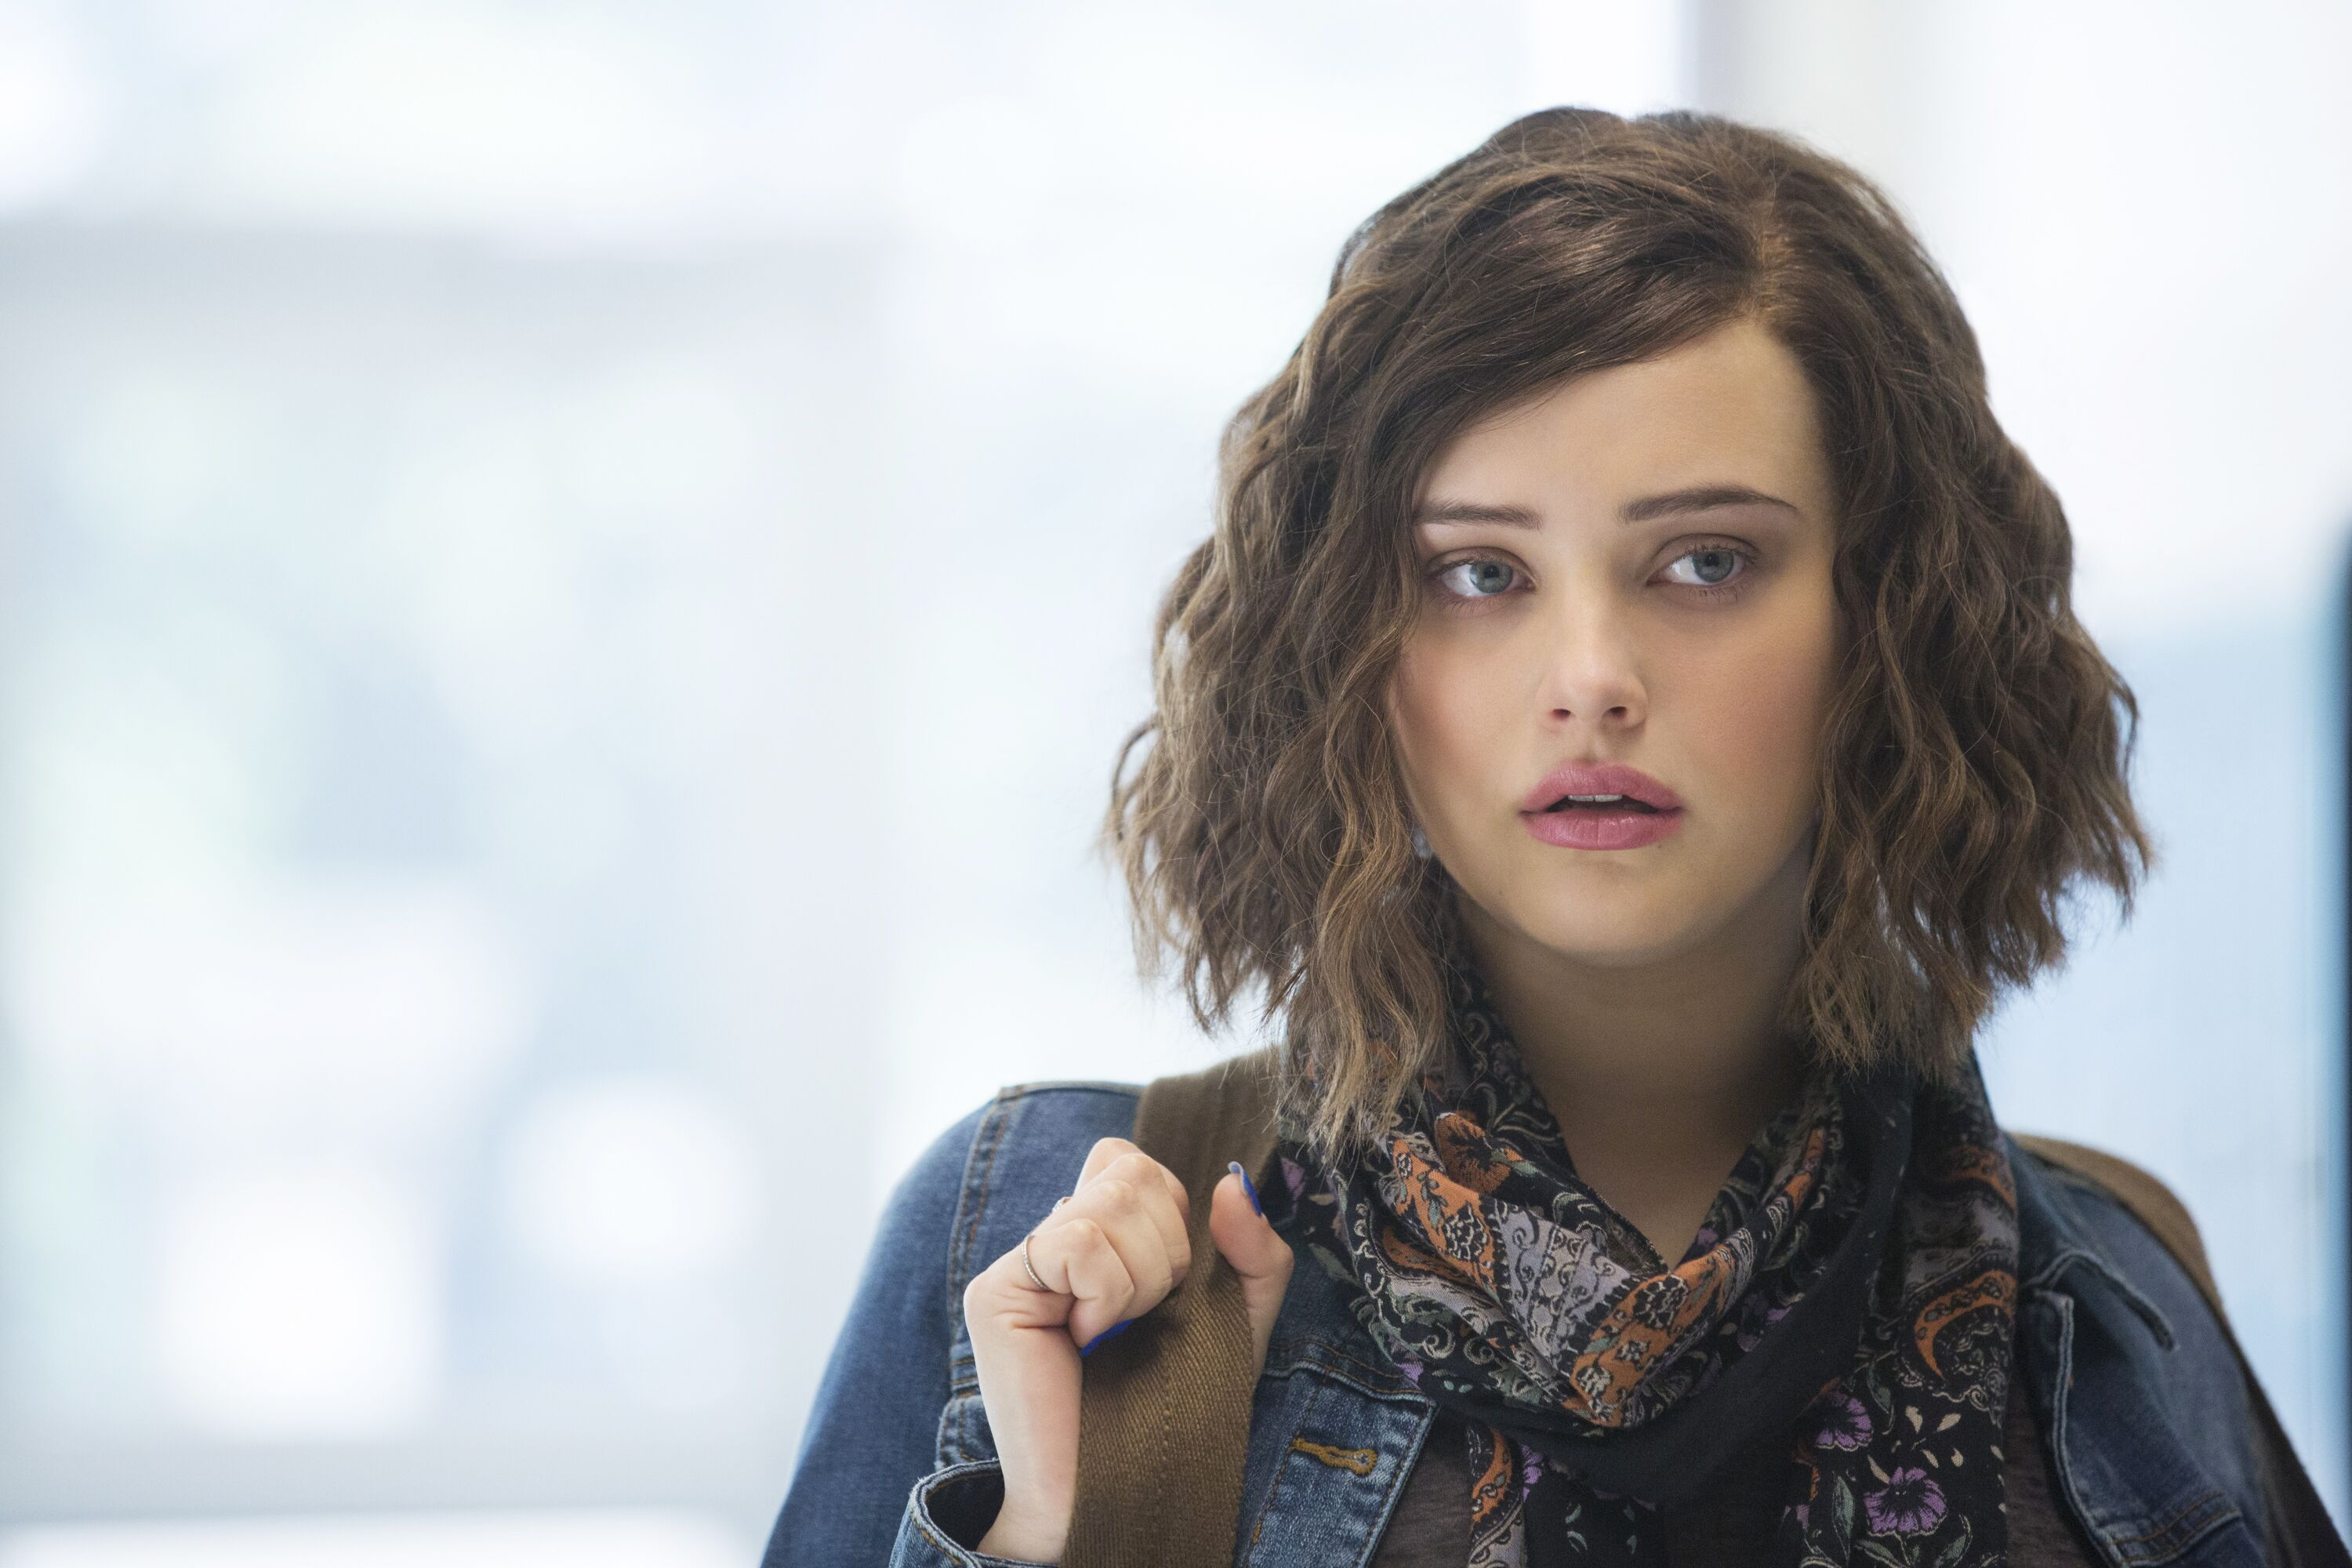 Netflix makes right decision to edit scene from 13 Reasons Why